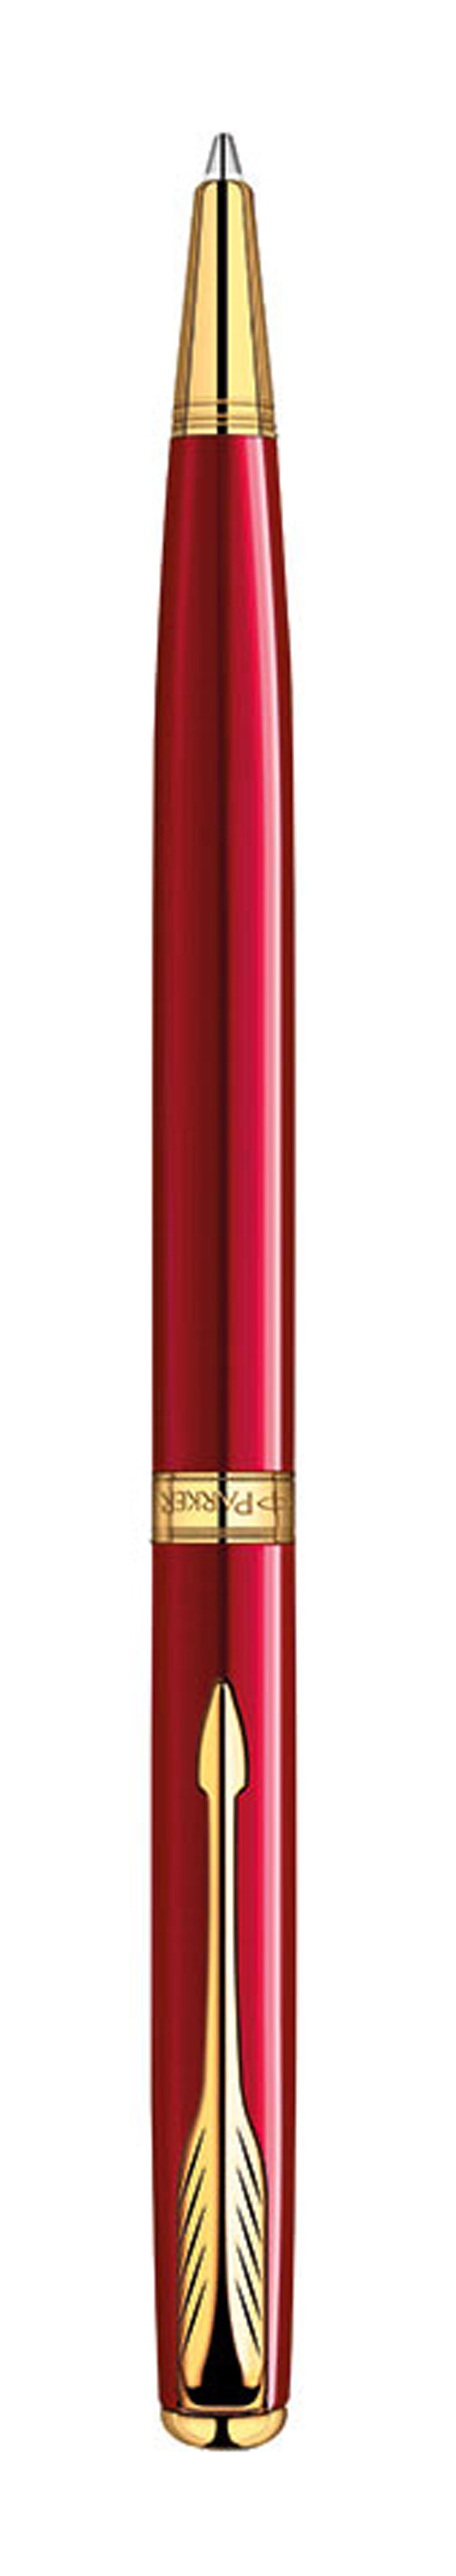 Ручка шариковая Sonnet Slim Laque Red GT. PARKER-S1859473